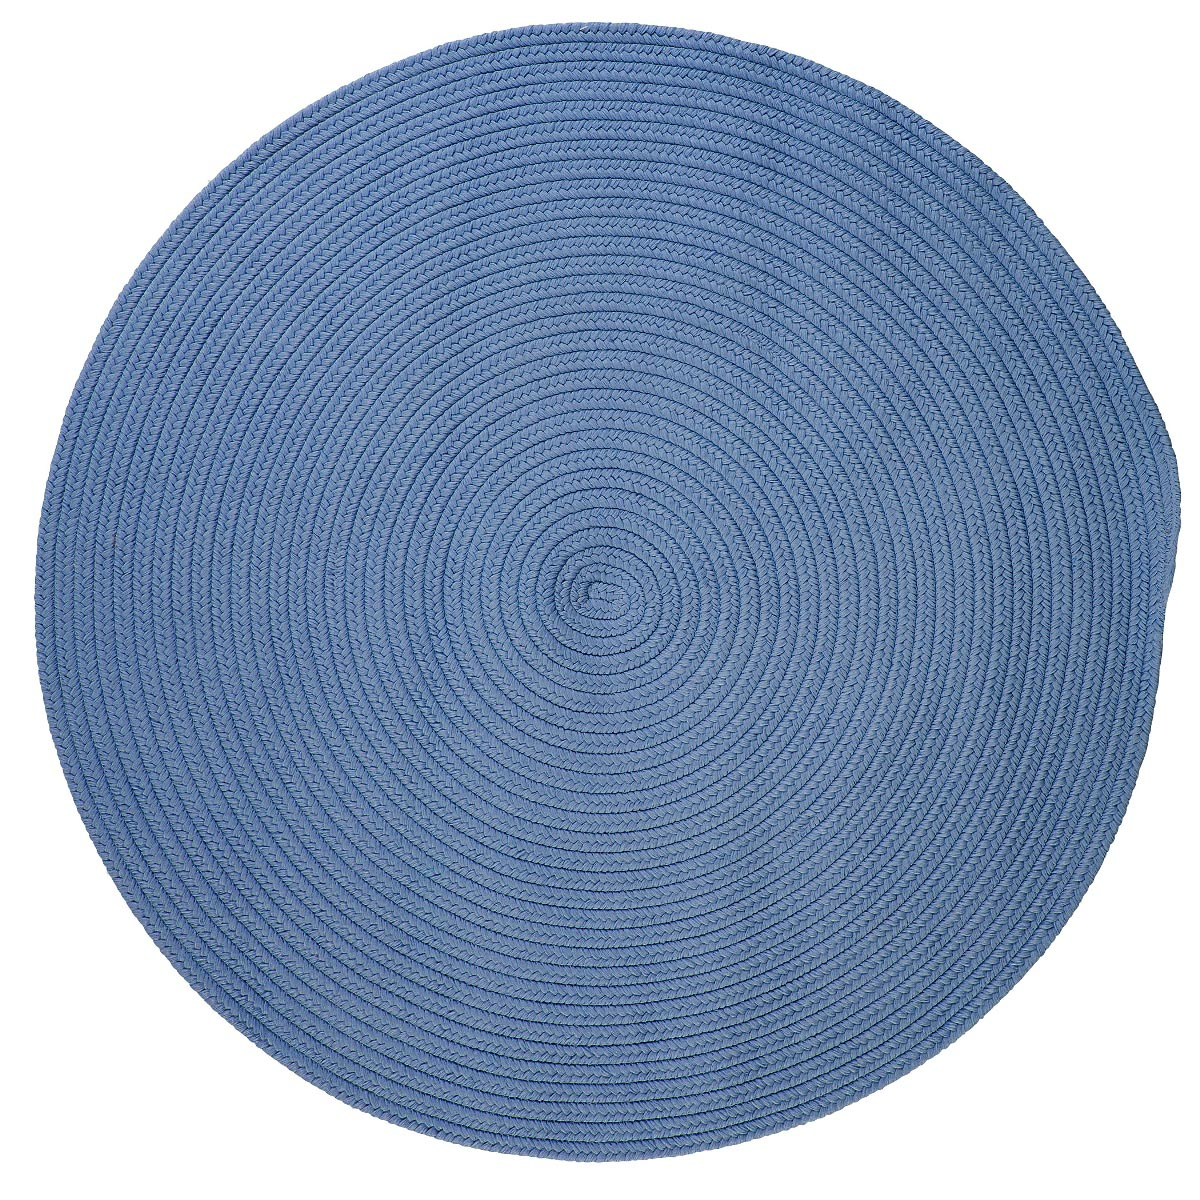 Boca Raton Blue Ice Outdoor Braided Round Rugs